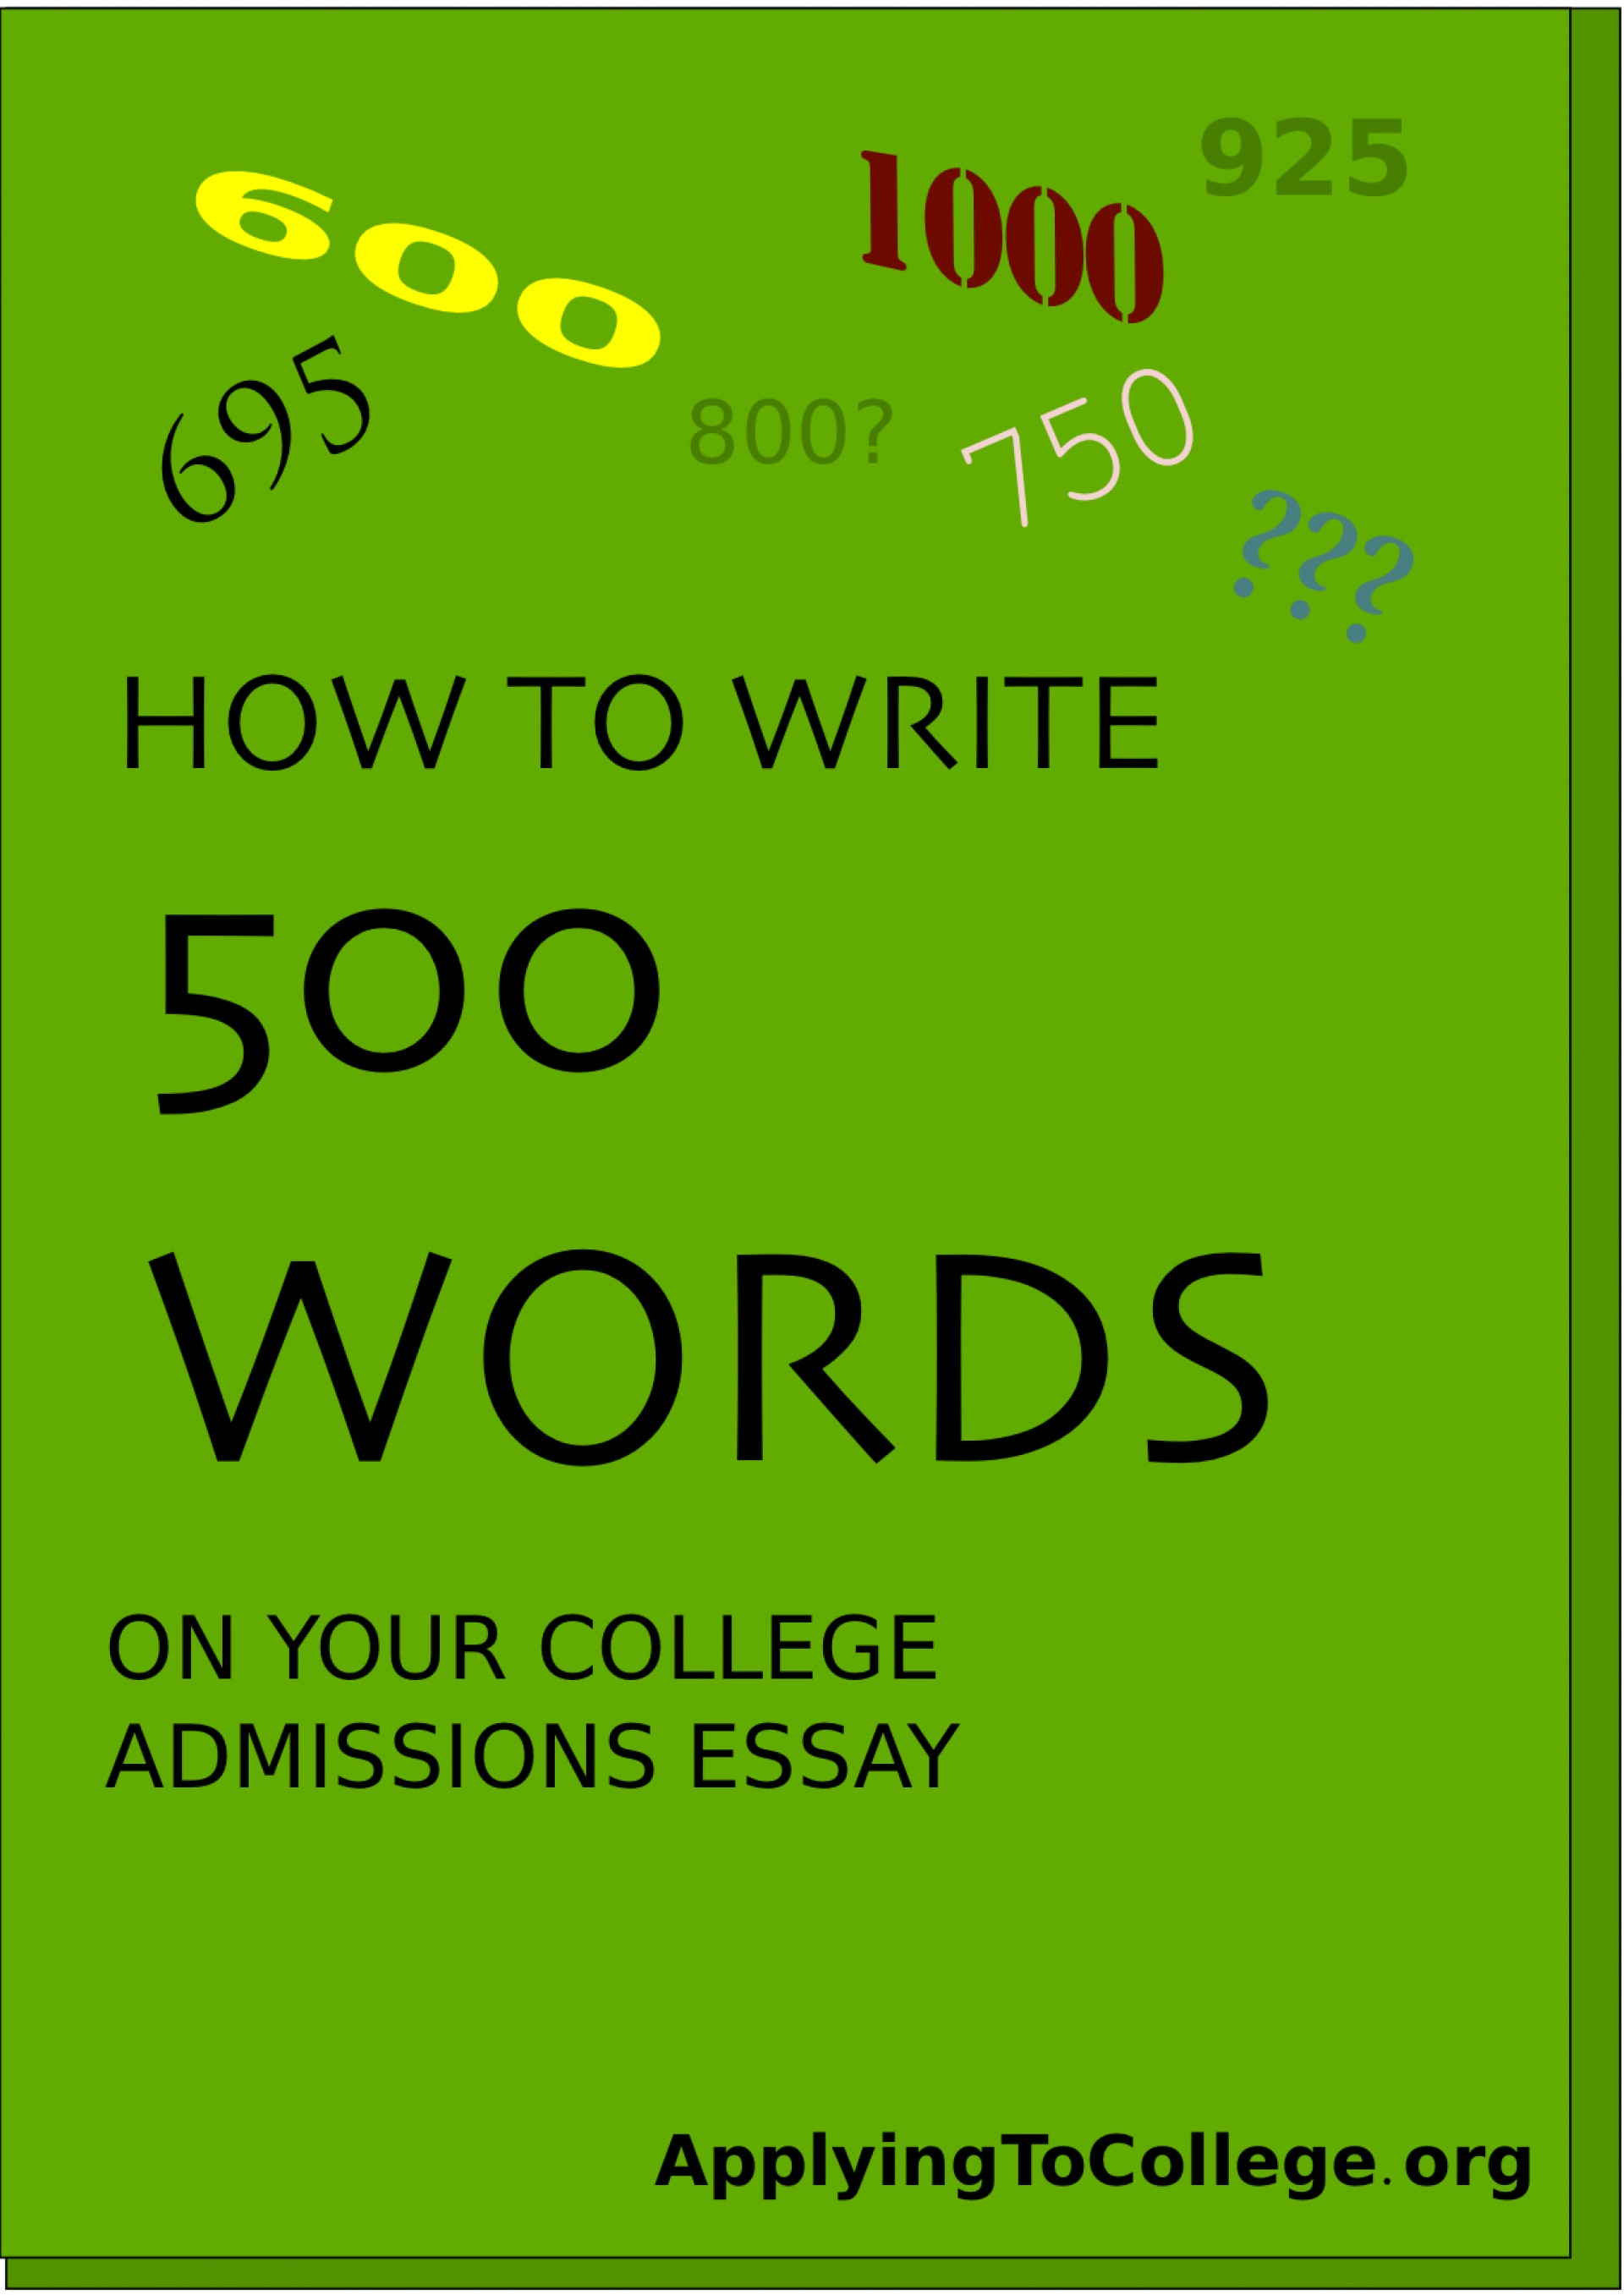 003 2903628546 Word Count For Common Application Essay College Beautiful Maximum 2018 1920